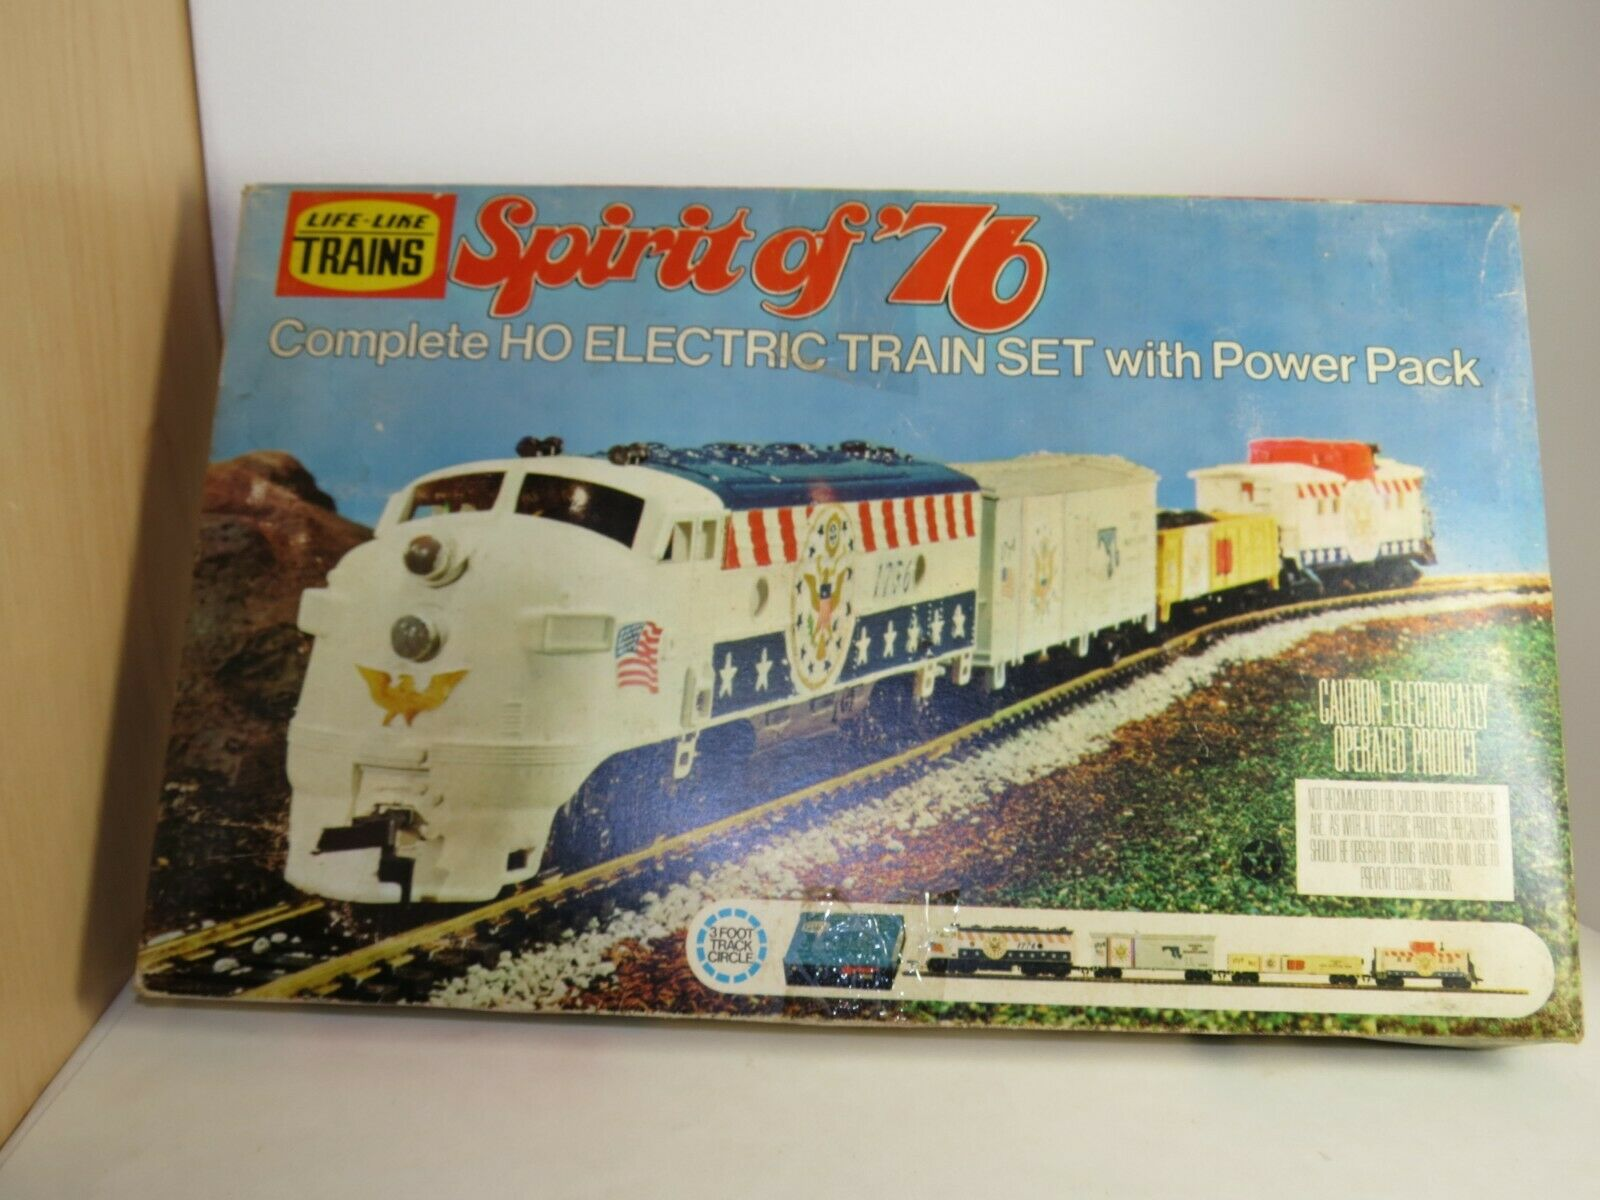 LIFE-LIKE TRAINS Spirit Of 76 HO Electric Train Set 08752 In Box